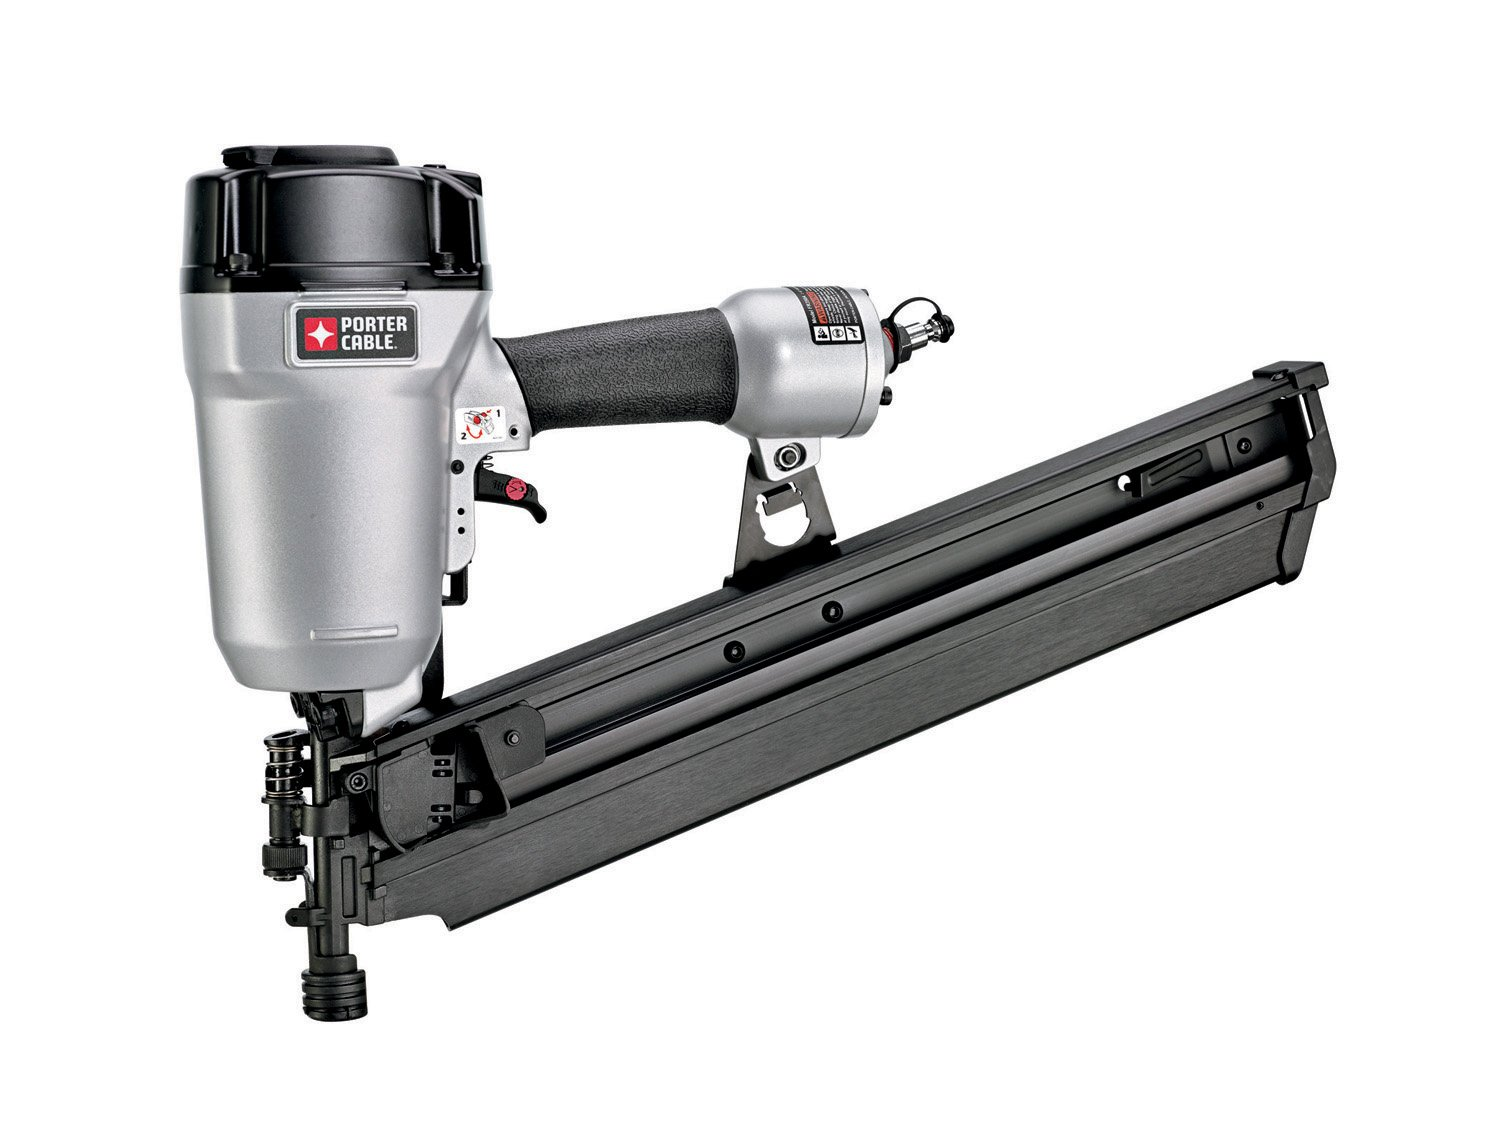 PORTER-CABLE FR350A Round Head 2-Inch to 3-1/2-Inch Framing Nailer ...